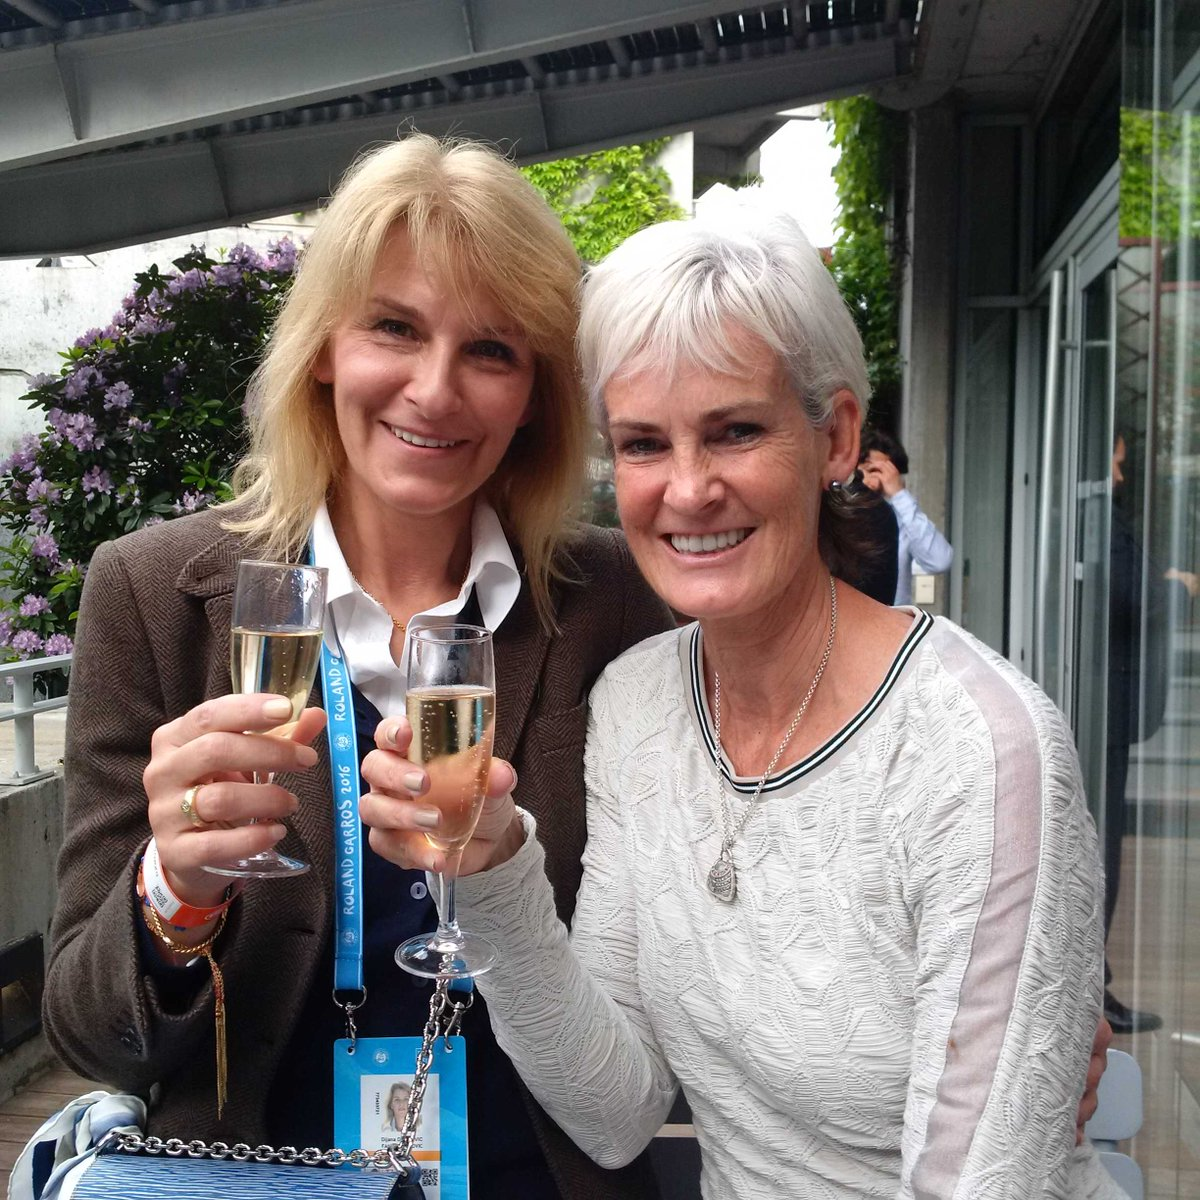 Andy murray twitter - Judy Murray On Twitter Mums Grannies Friends Me And Djana Djokovic Toasting Our Sons Rolandgarros Https T Co 14iyeyct9n